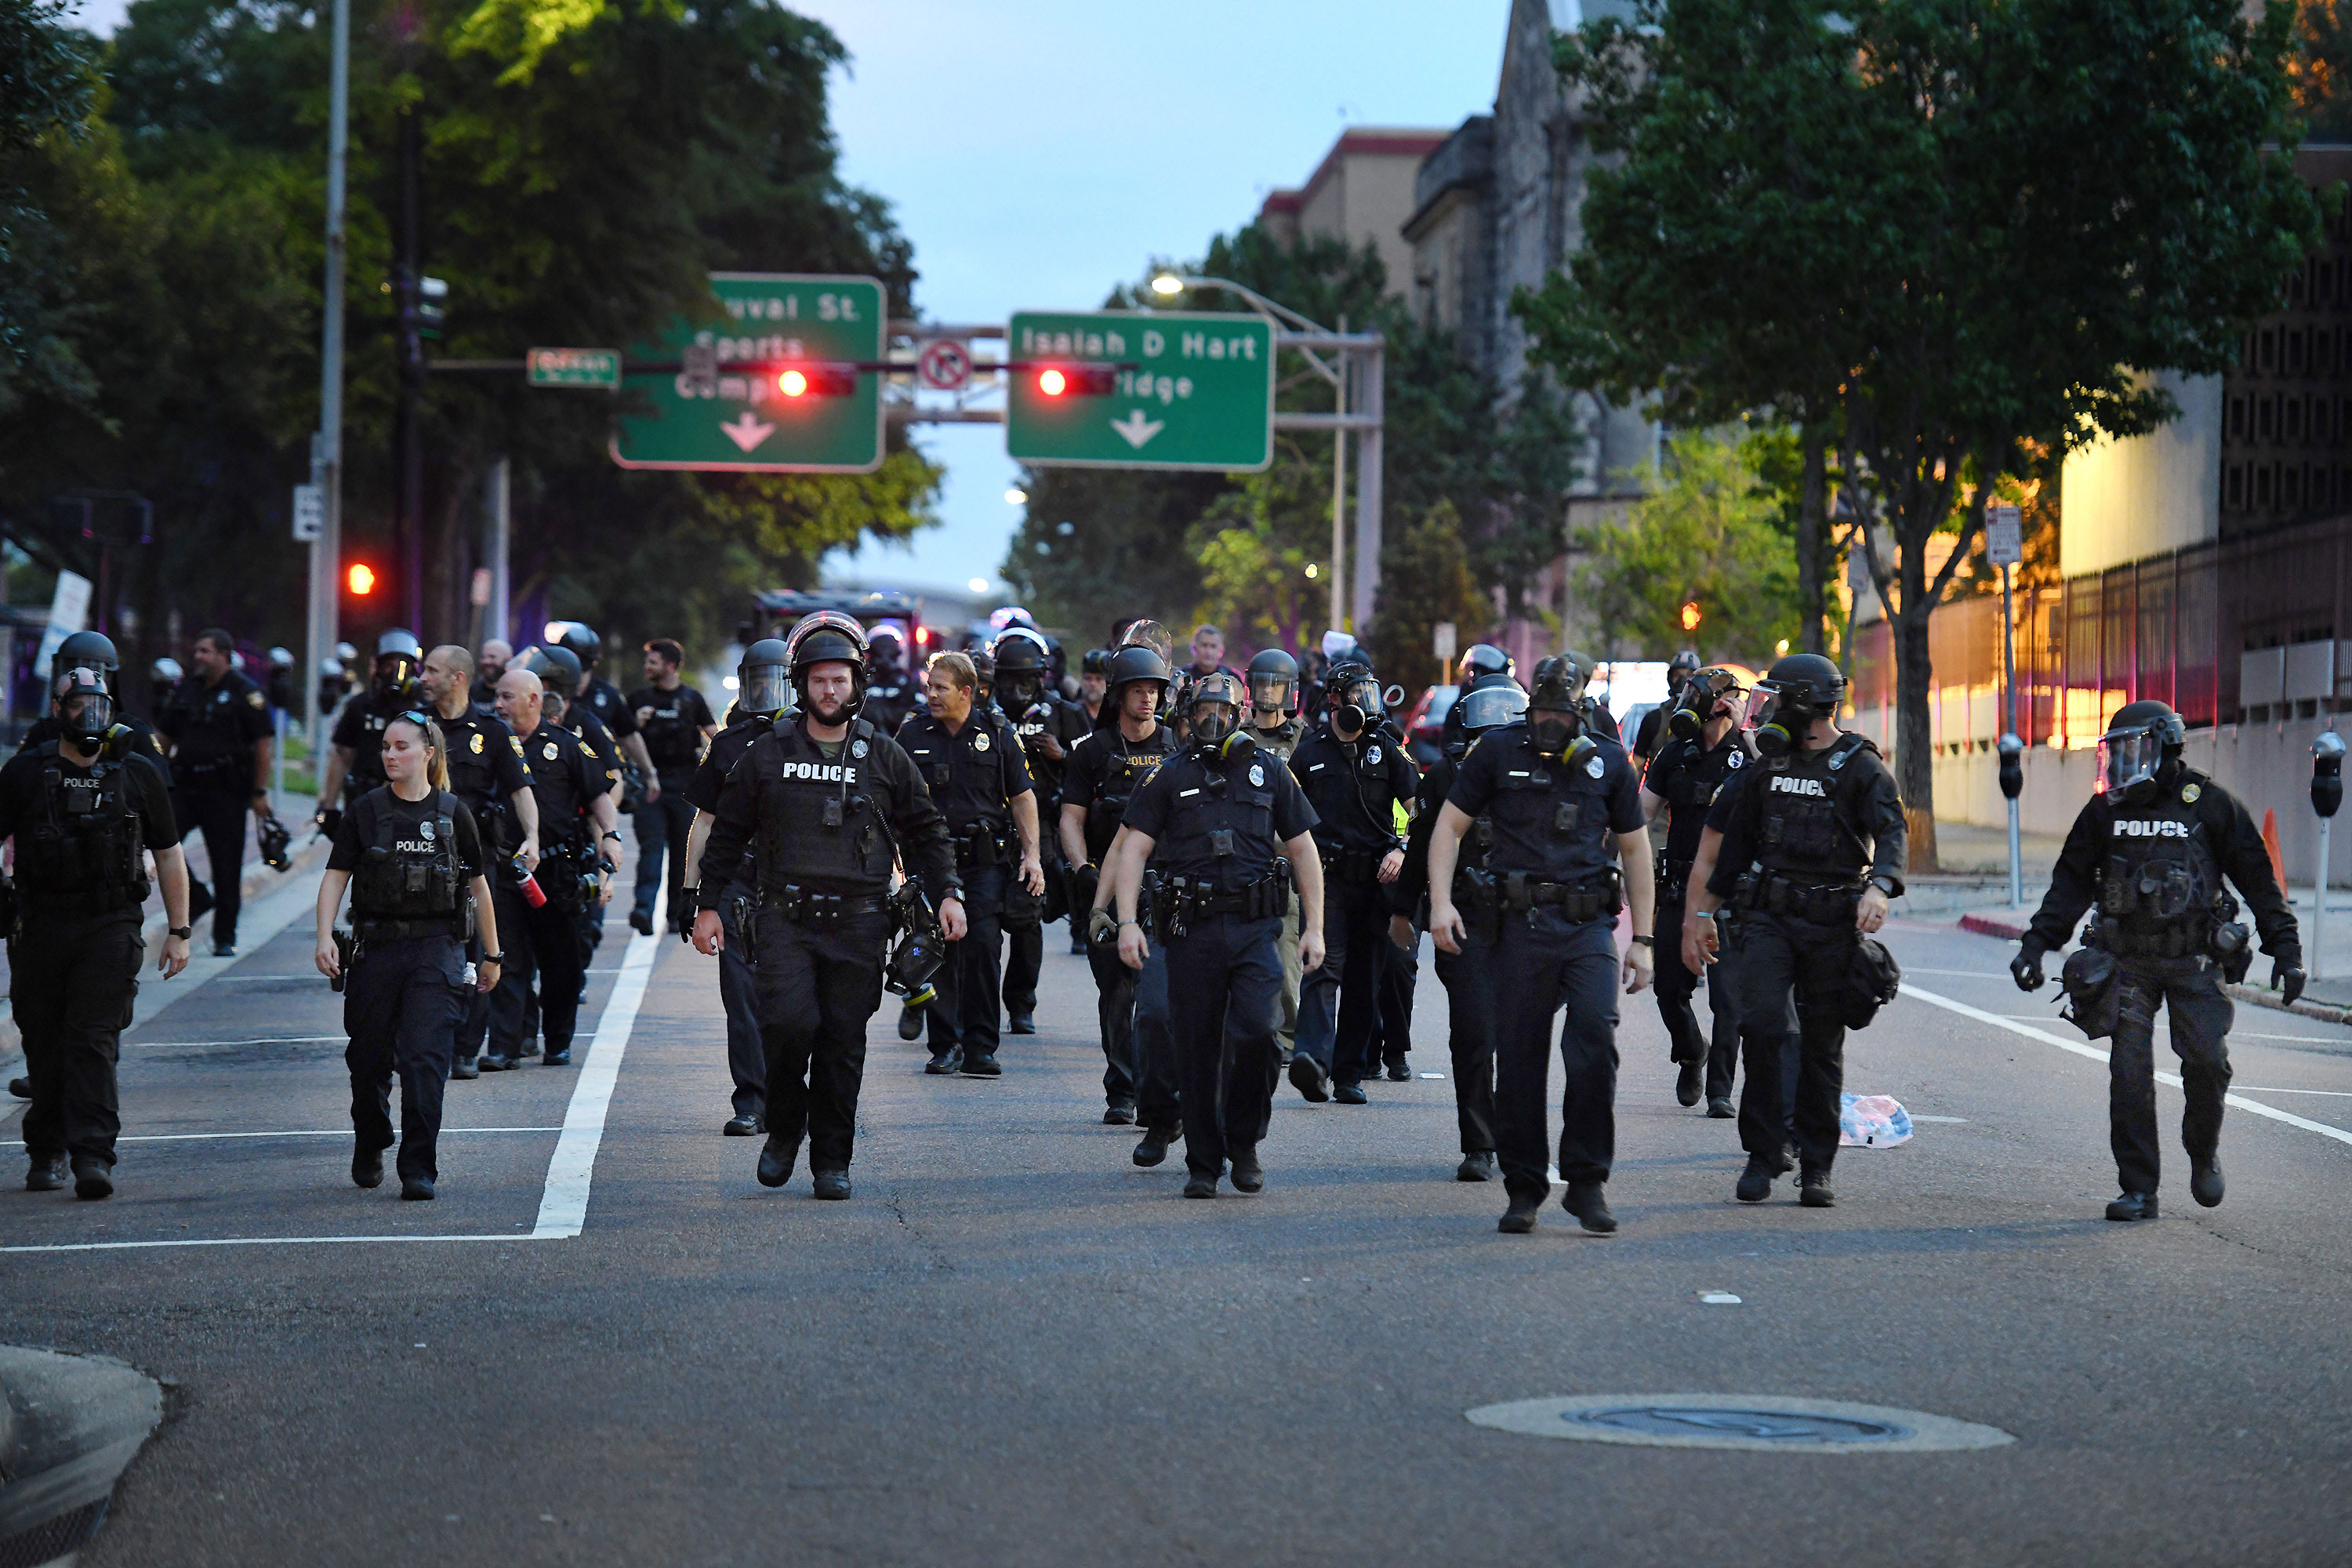 Police officers move down East Monroe Street toward Main Street in Jacksonville, Florida, on May 30.